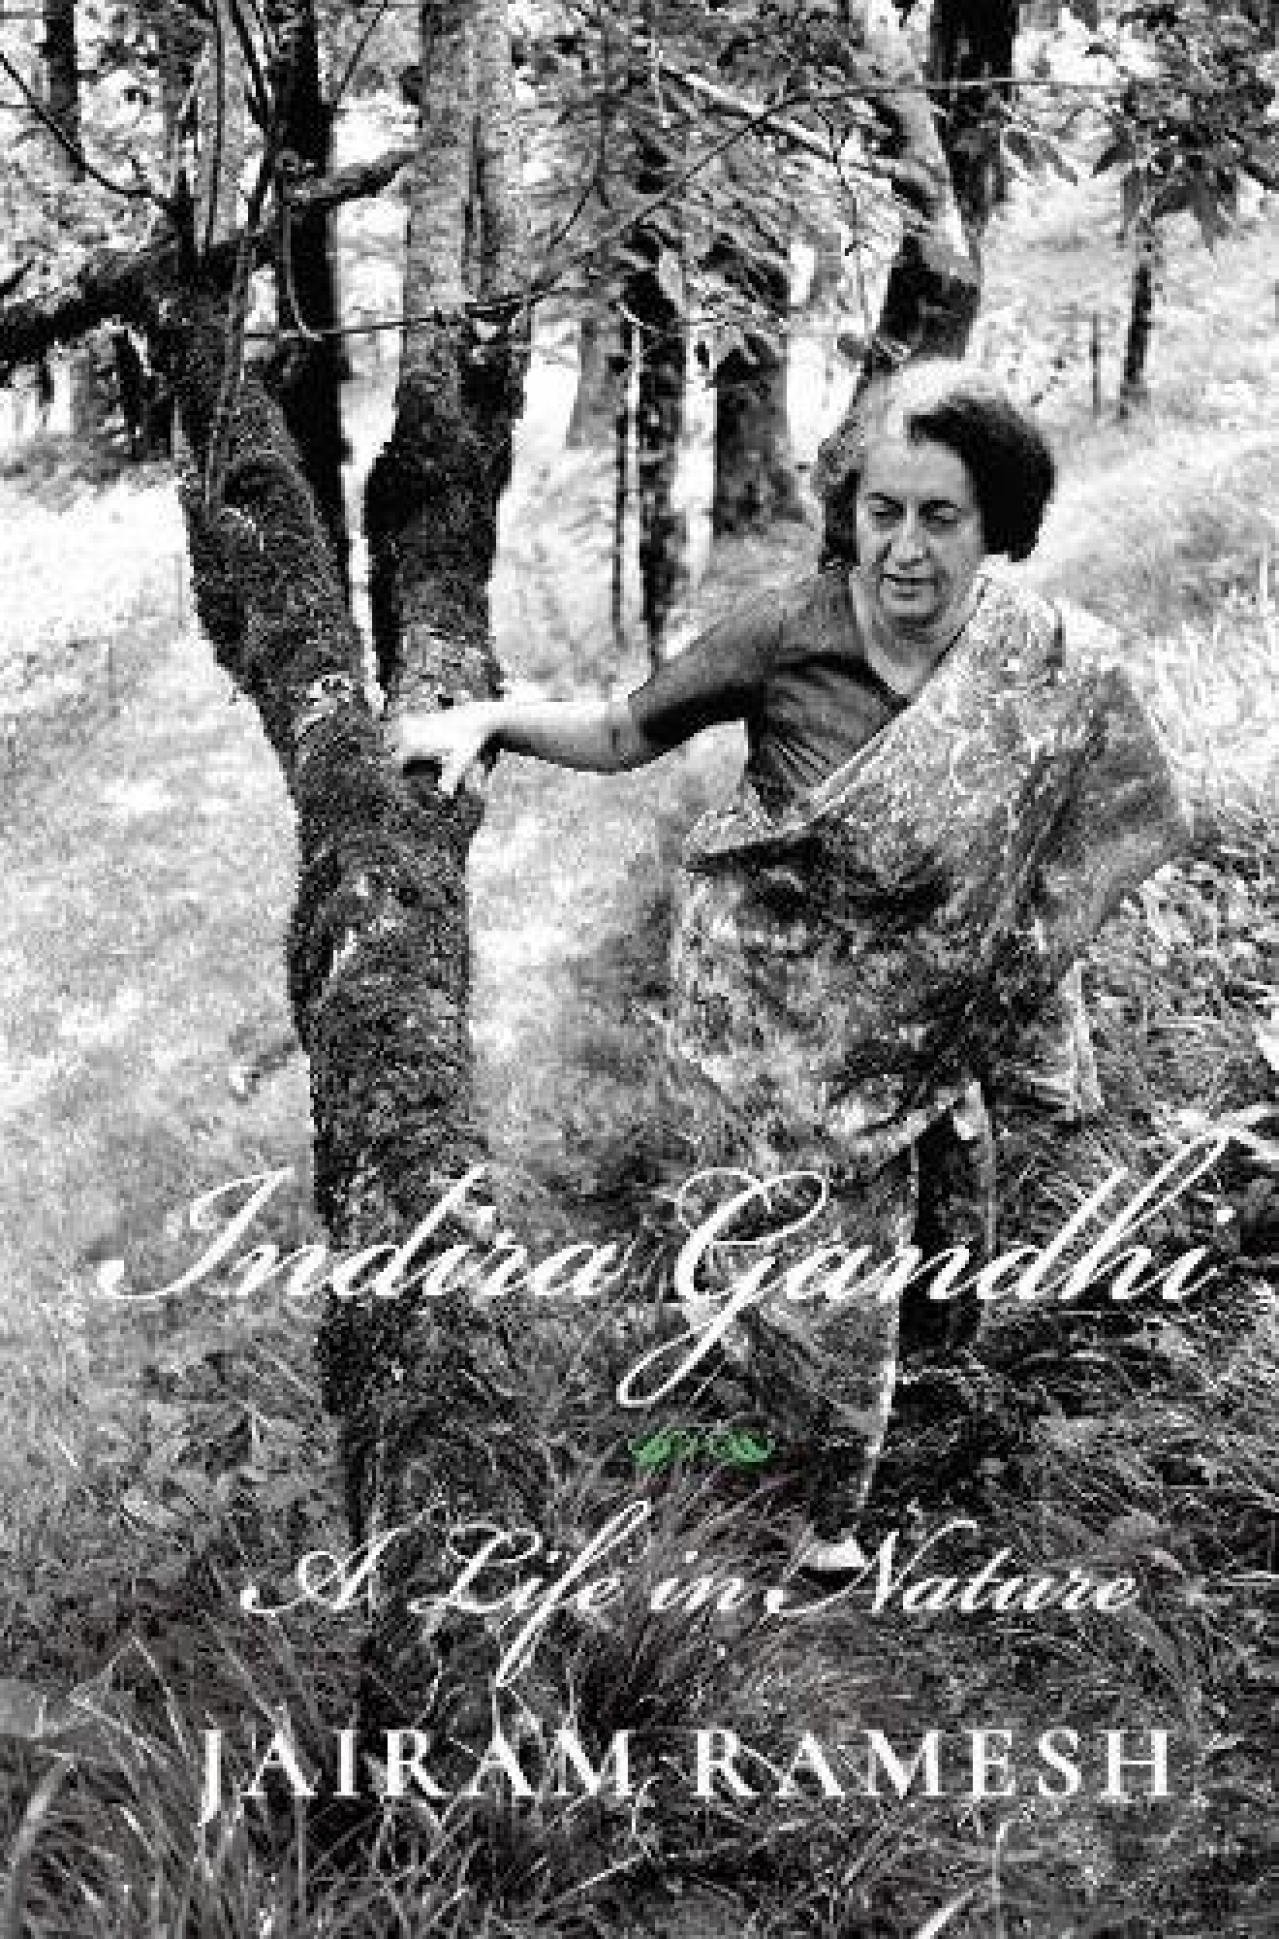 Indira Gandhi: A Life In Nature by Jairam Ramesh